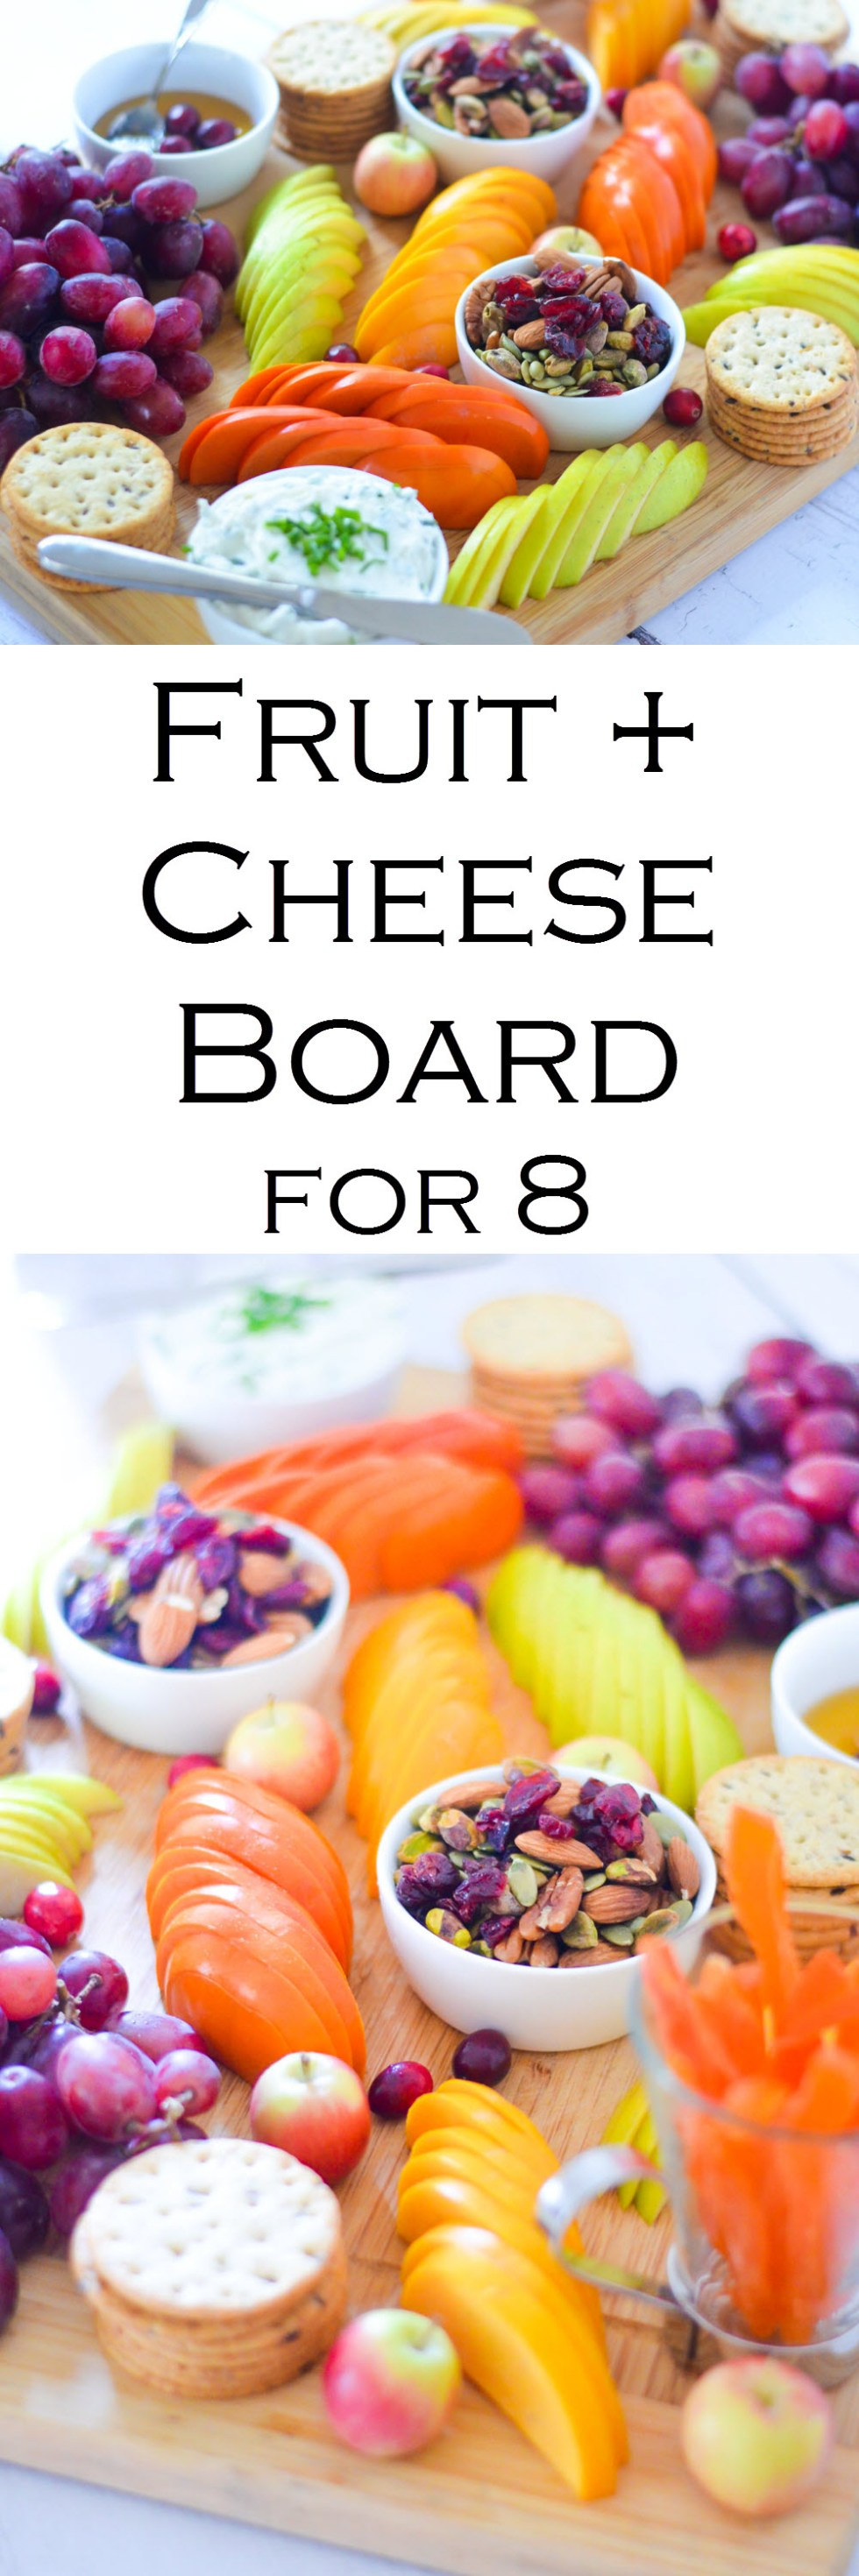 Fruit and Cheese Appetizer Board for 8 People. Featuring trail mix, sliced fresh fruit, herbed goat cheese, and crackers.